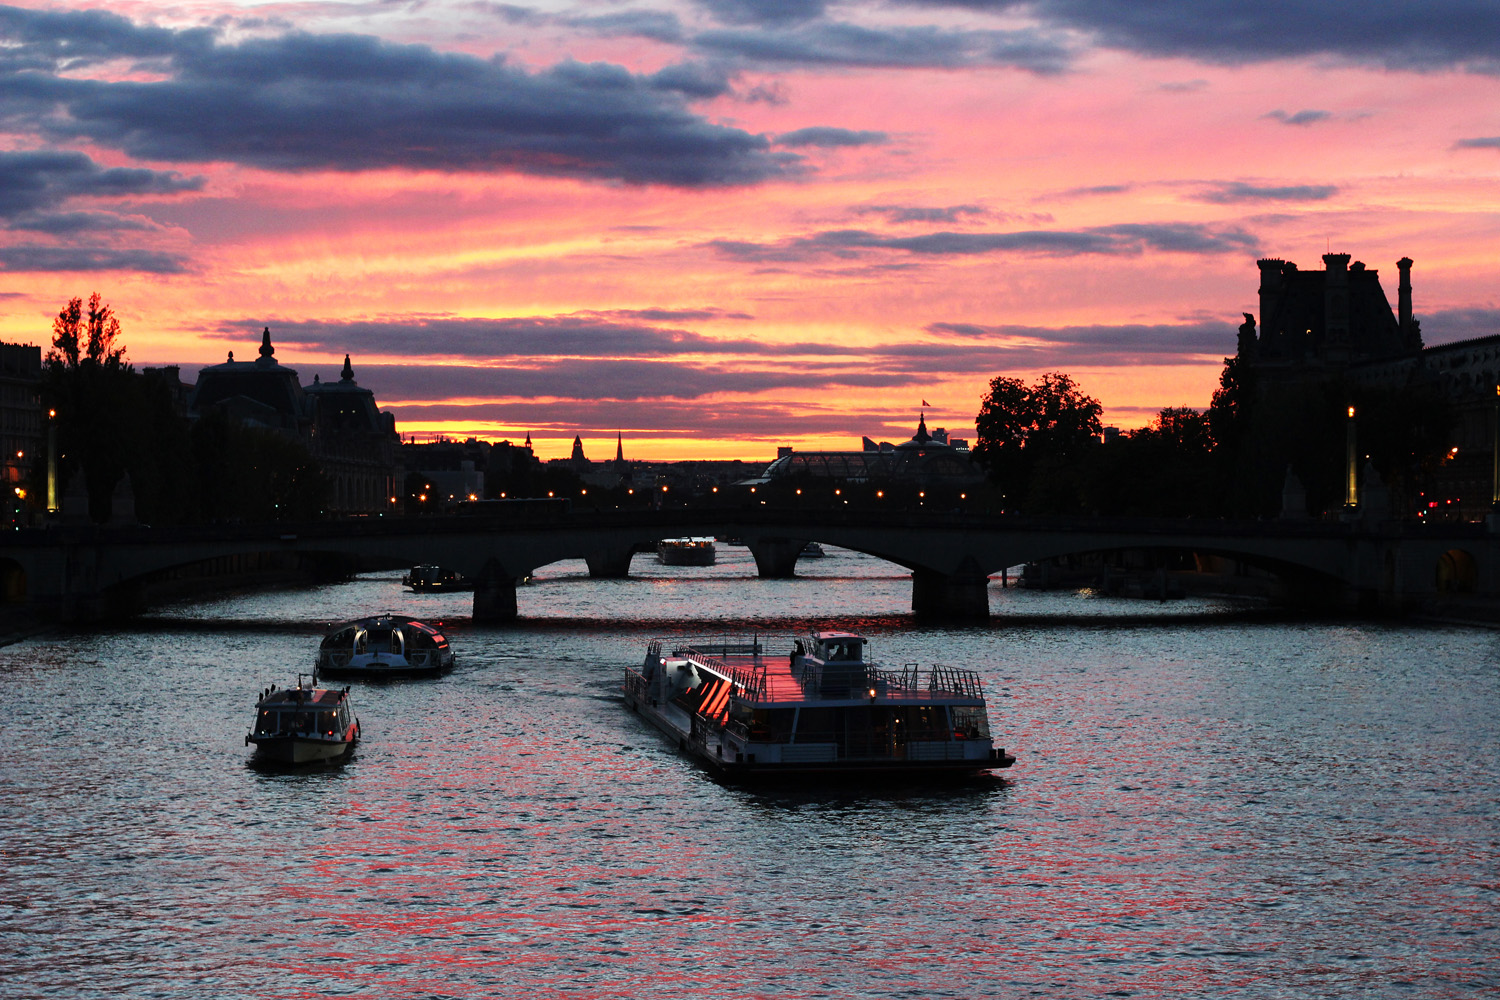 fatimayarie-pink-sunset-breathtaking-orange-sunrise-seine-pontdesarts-img_1227